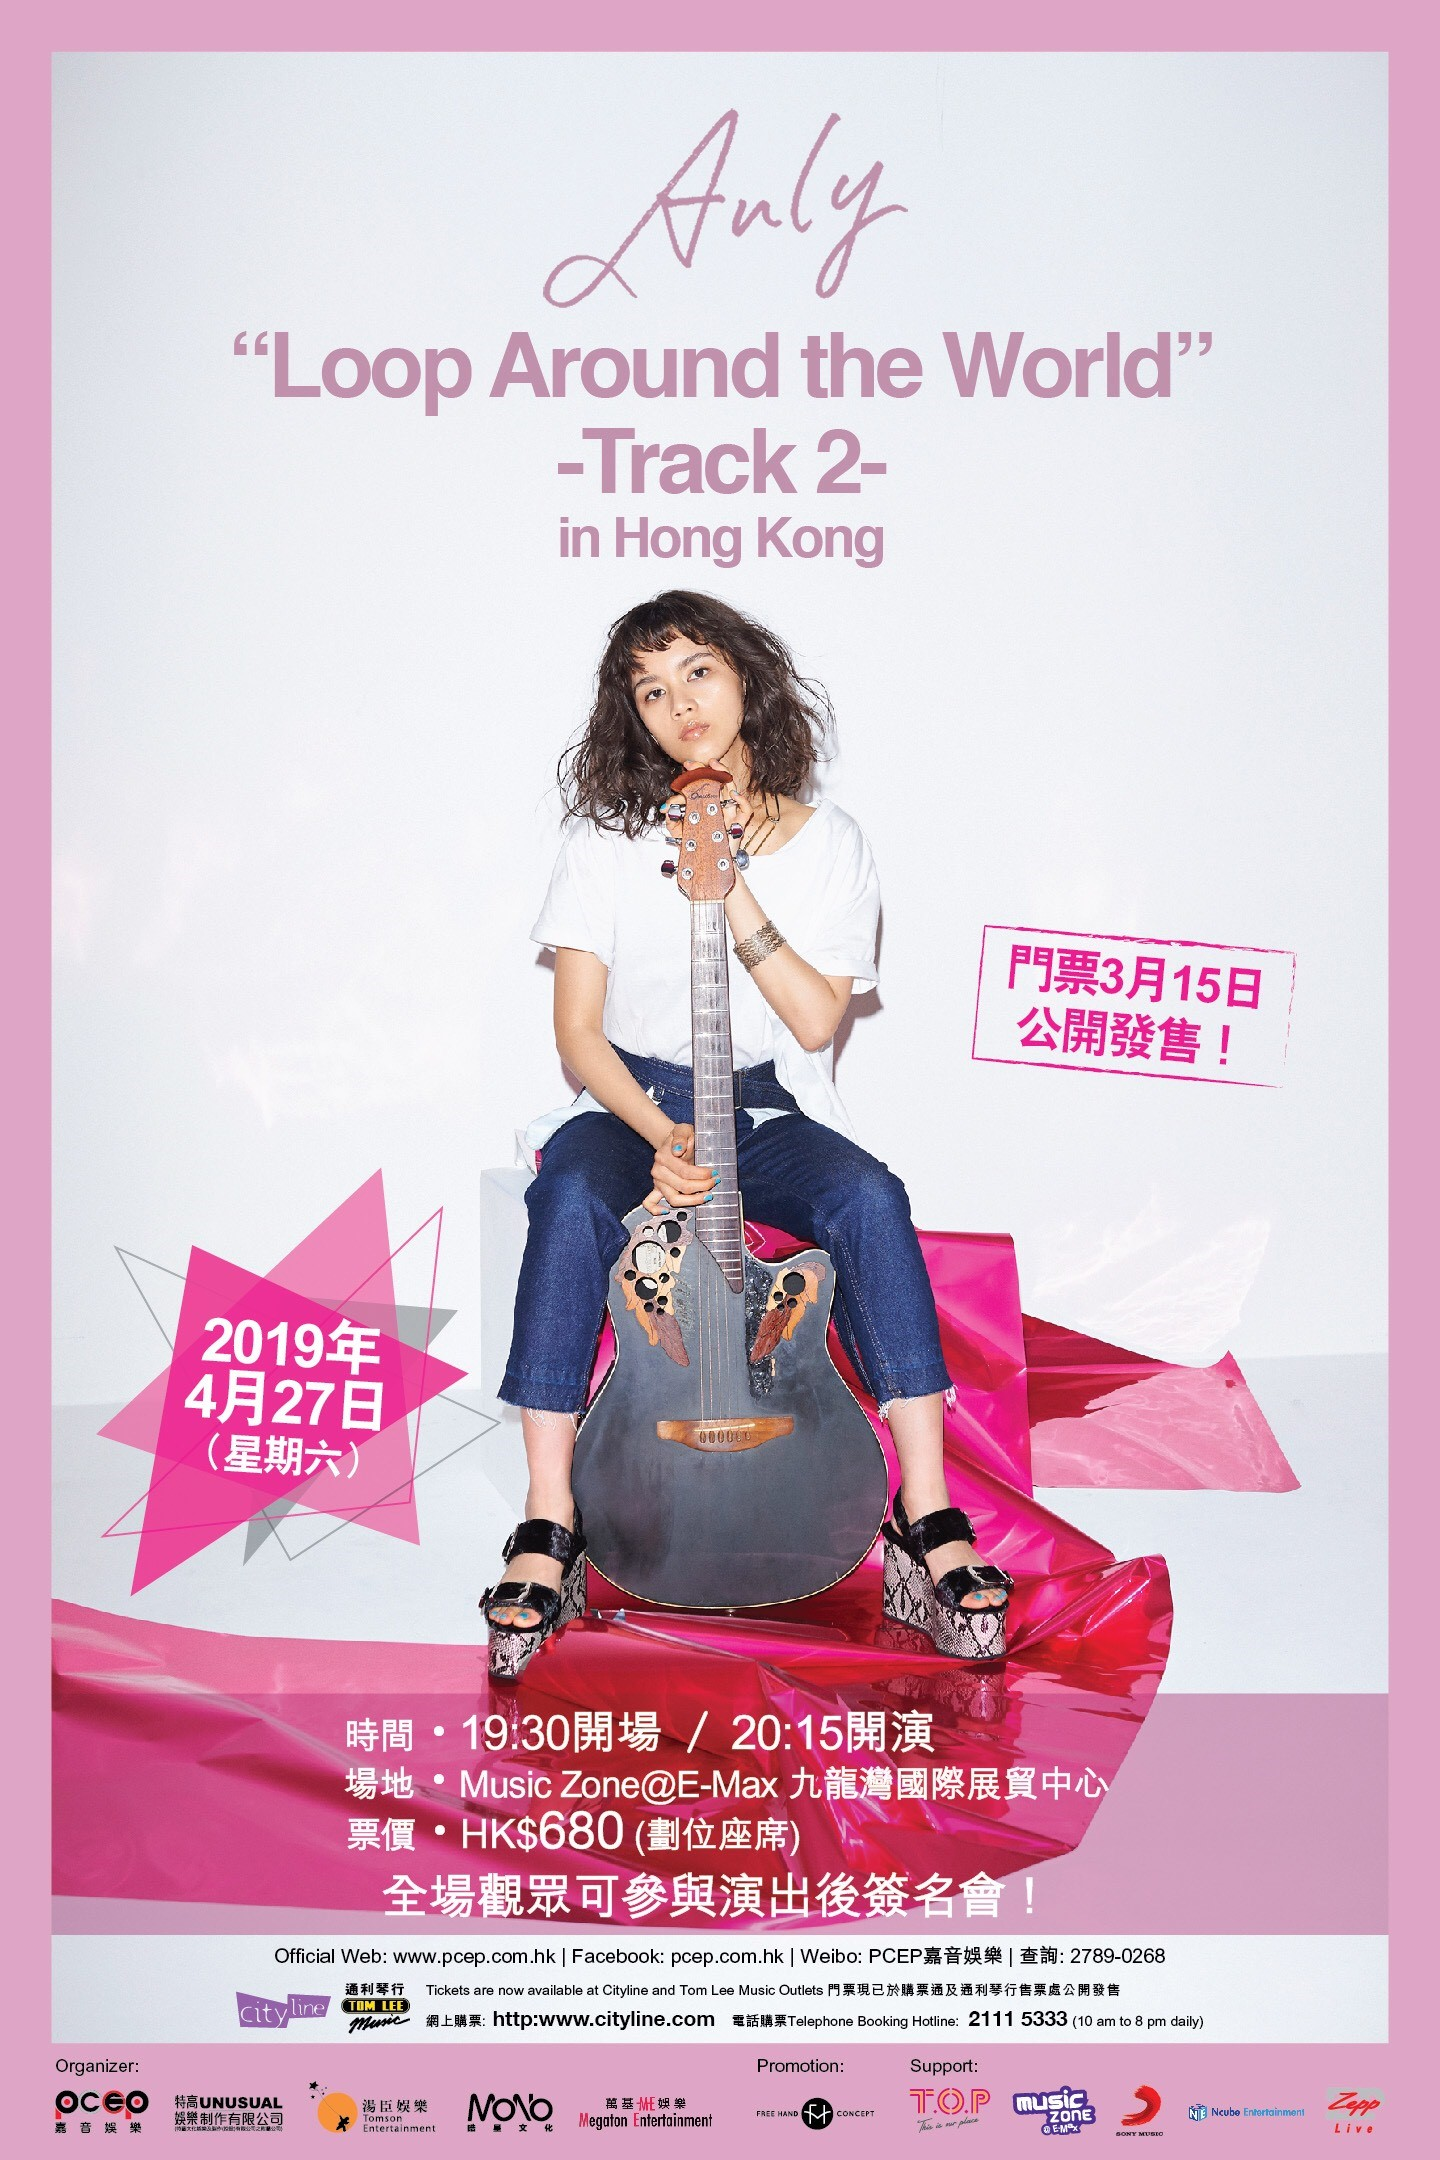 """Anly """"Loop Around the World"""" Track2 in Hong Kong 香港演唱會2019 4月27日美聲獻唱 - AniSong Headline 動漫音樂資訊站"""